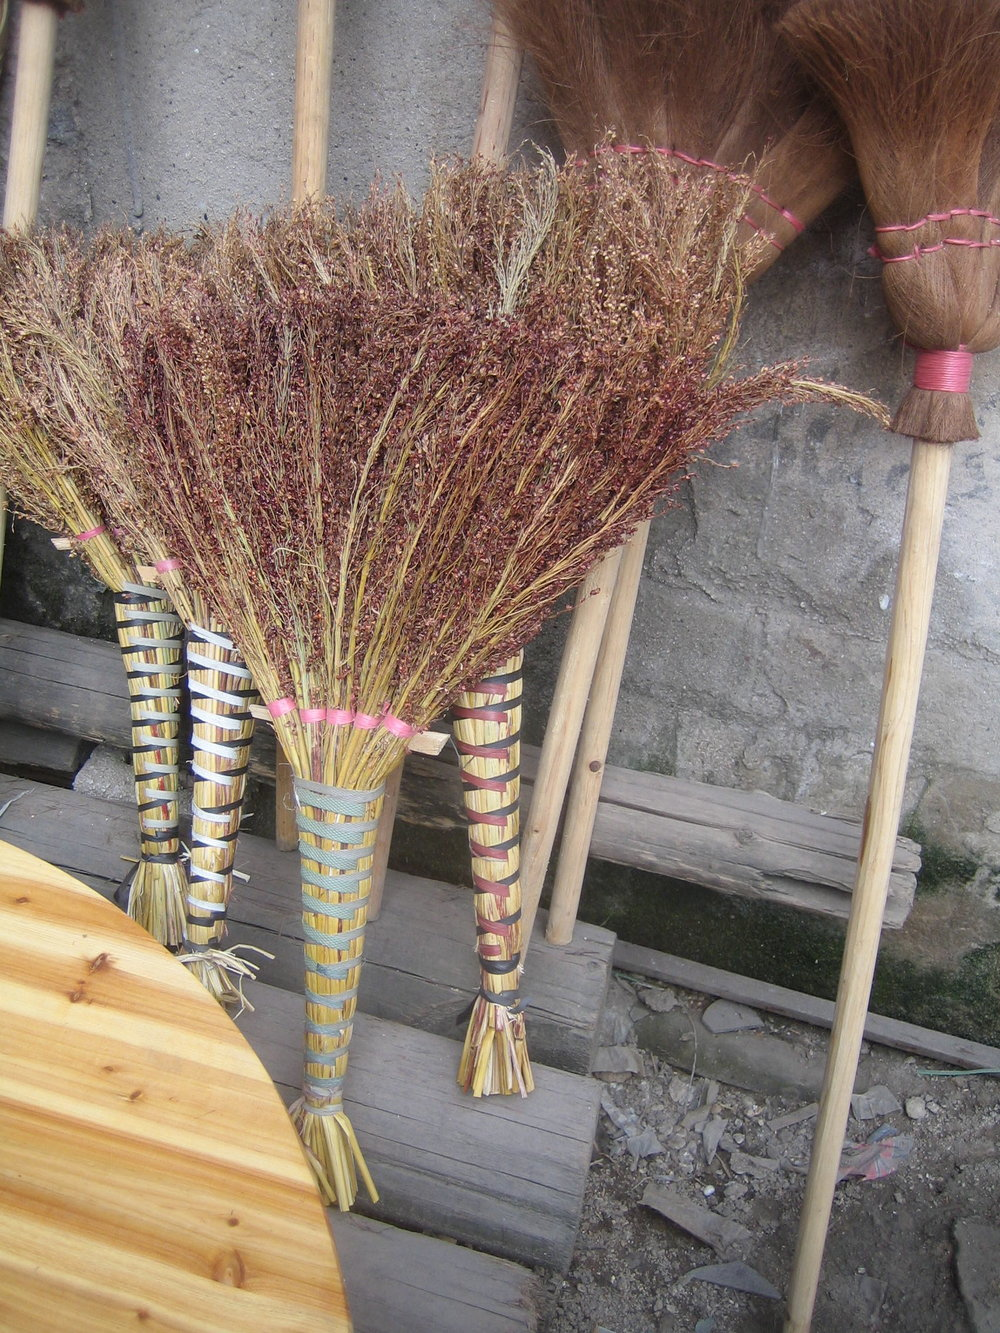 broom_China2010.jpg